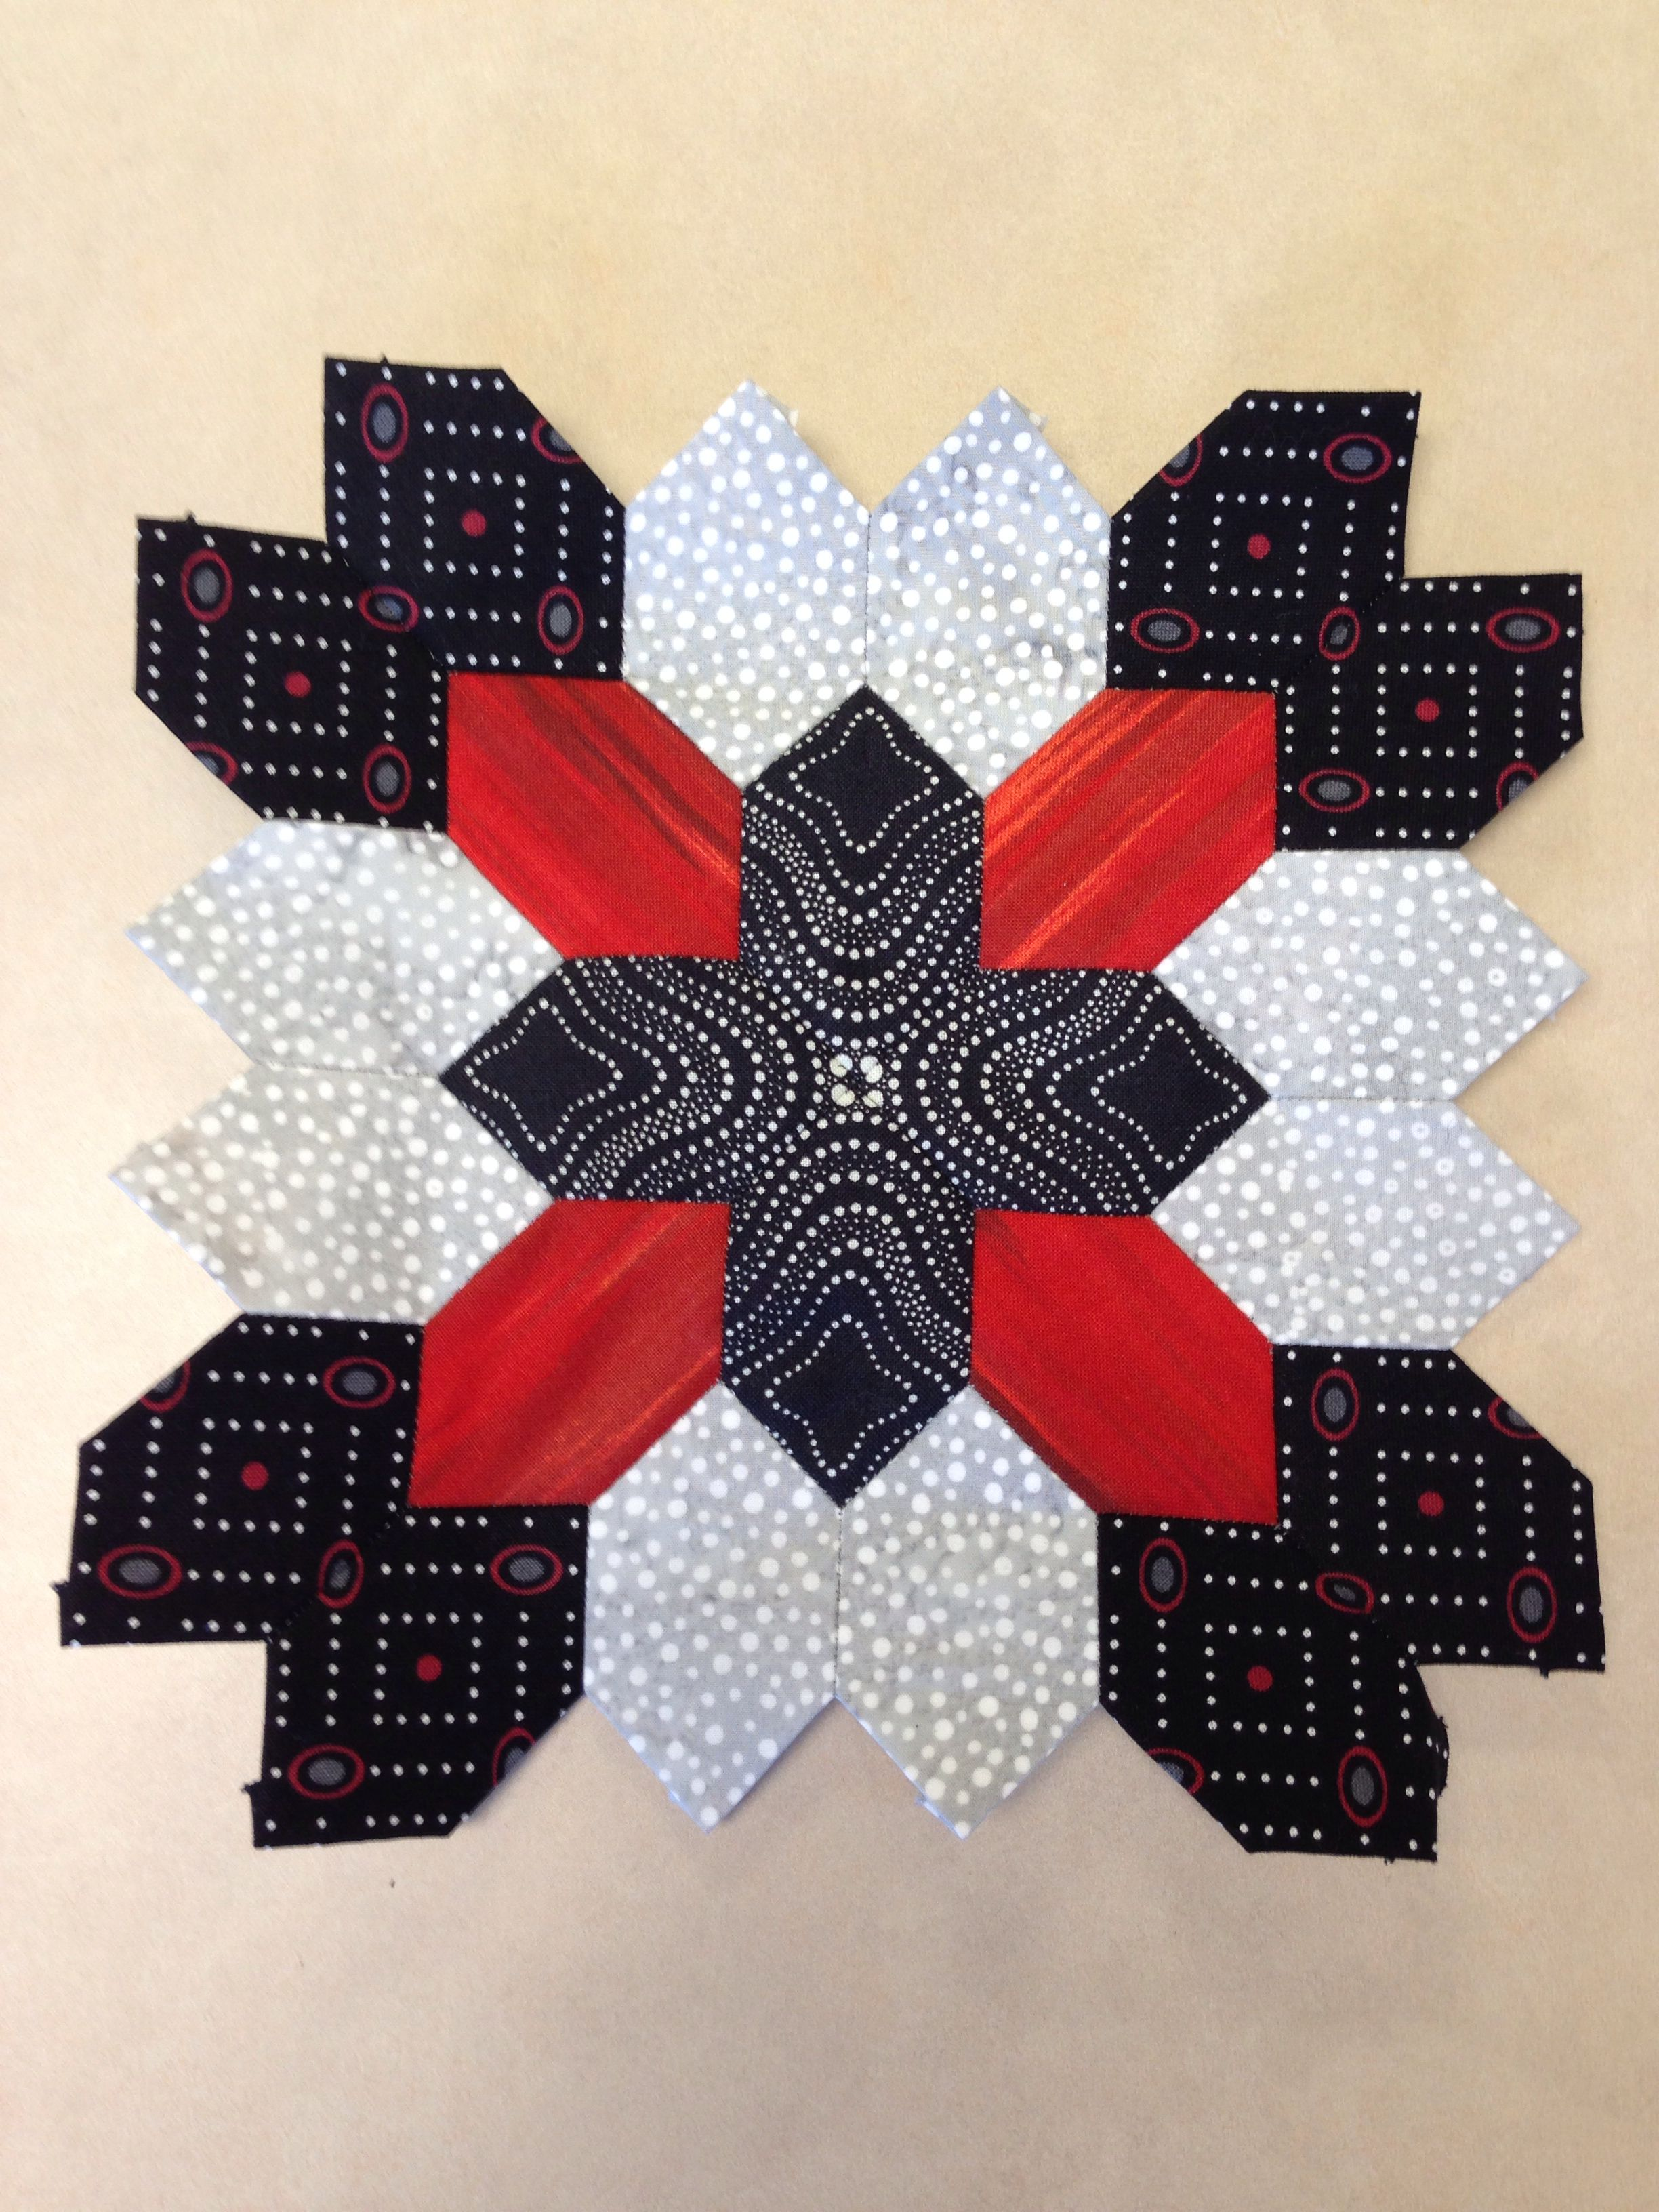 Lucy Boston quilt block made with English paper piecing in black, gray, and red.